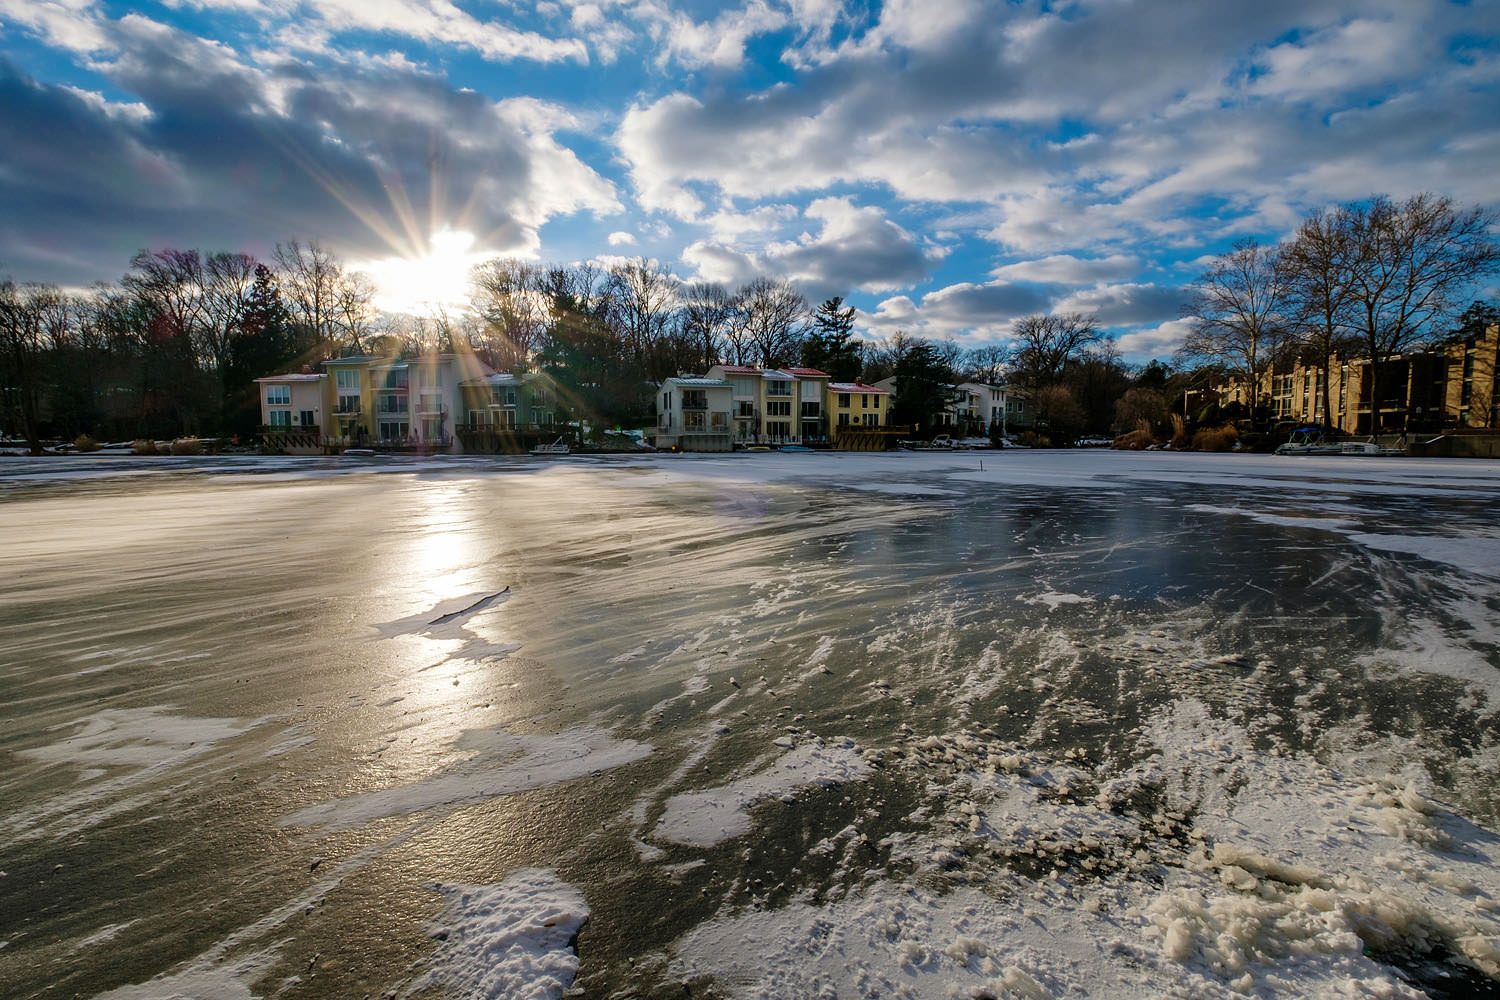 Frozen Lake Anne in Reston, Virginia in the winter